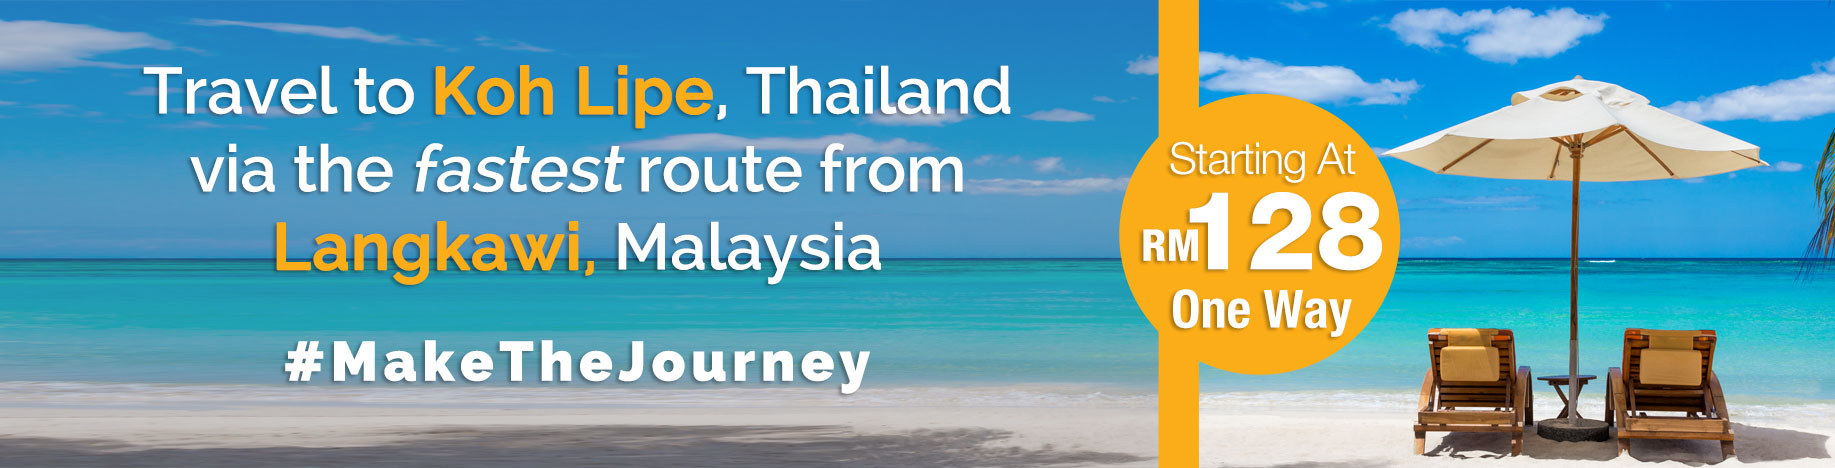 Travel to Koh Lipe, Thailand via the fastest route from Langkawi, Malaysia starting at RM128 one way. #makethejourney